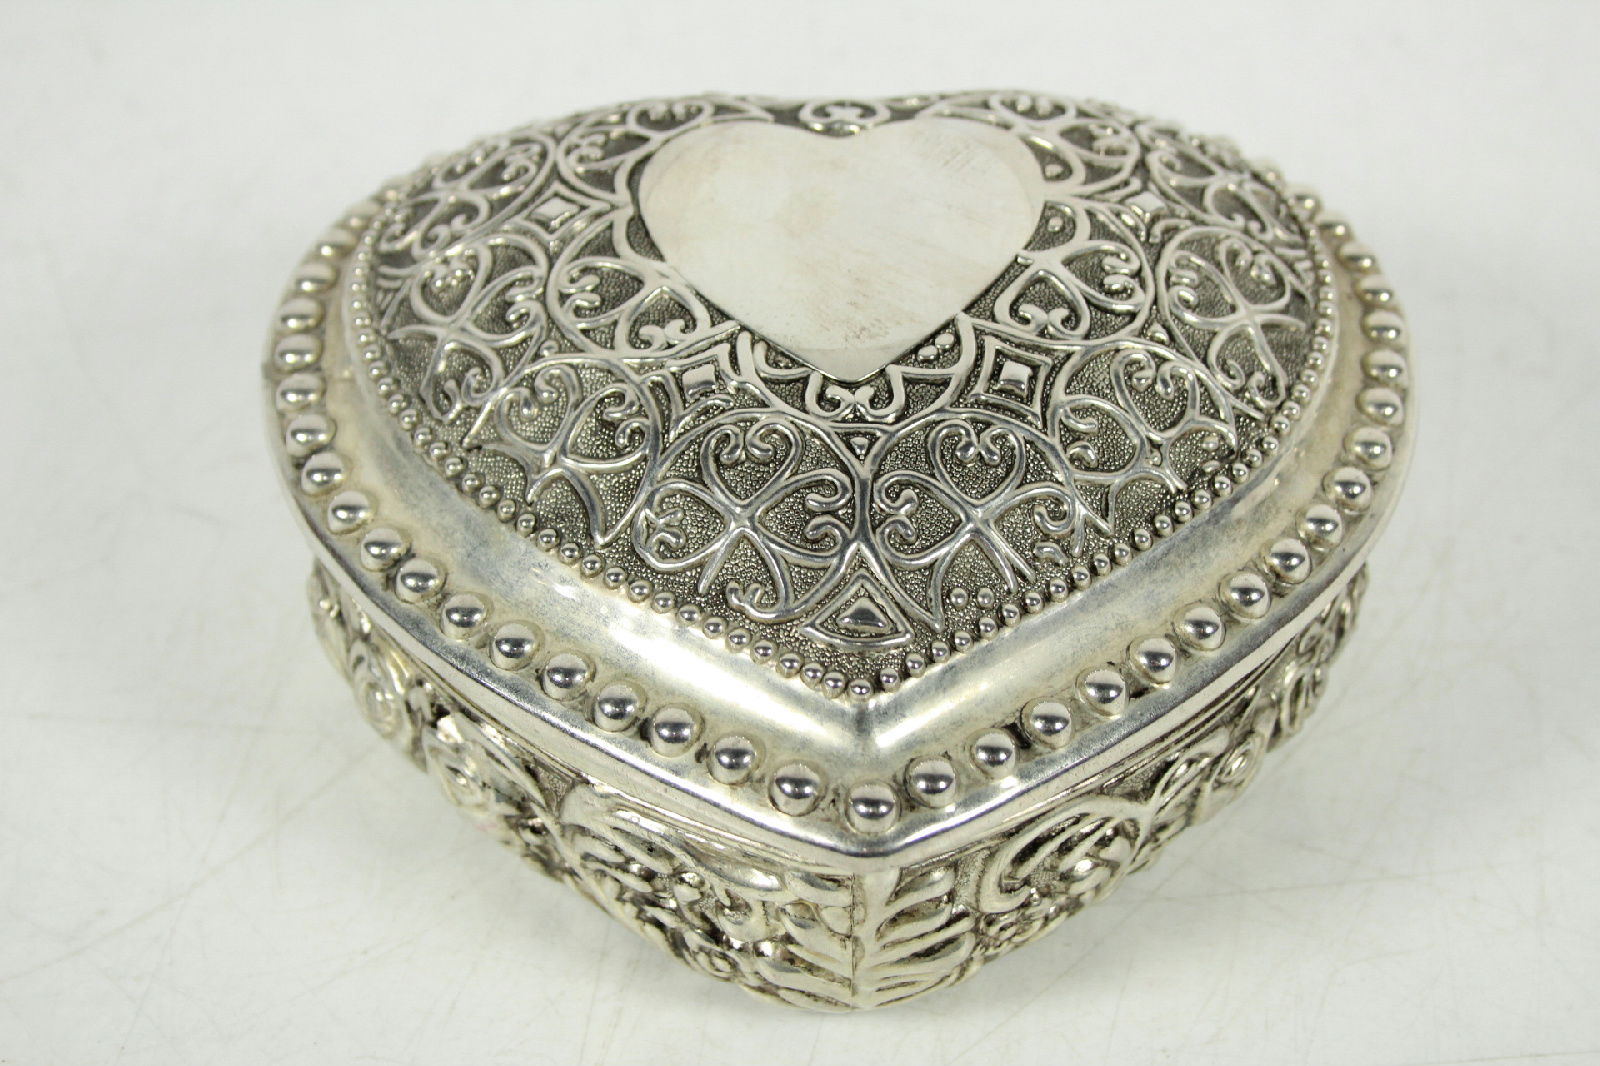 Vintage Heart Shaped Silver Tone Ornate Decorative Lined